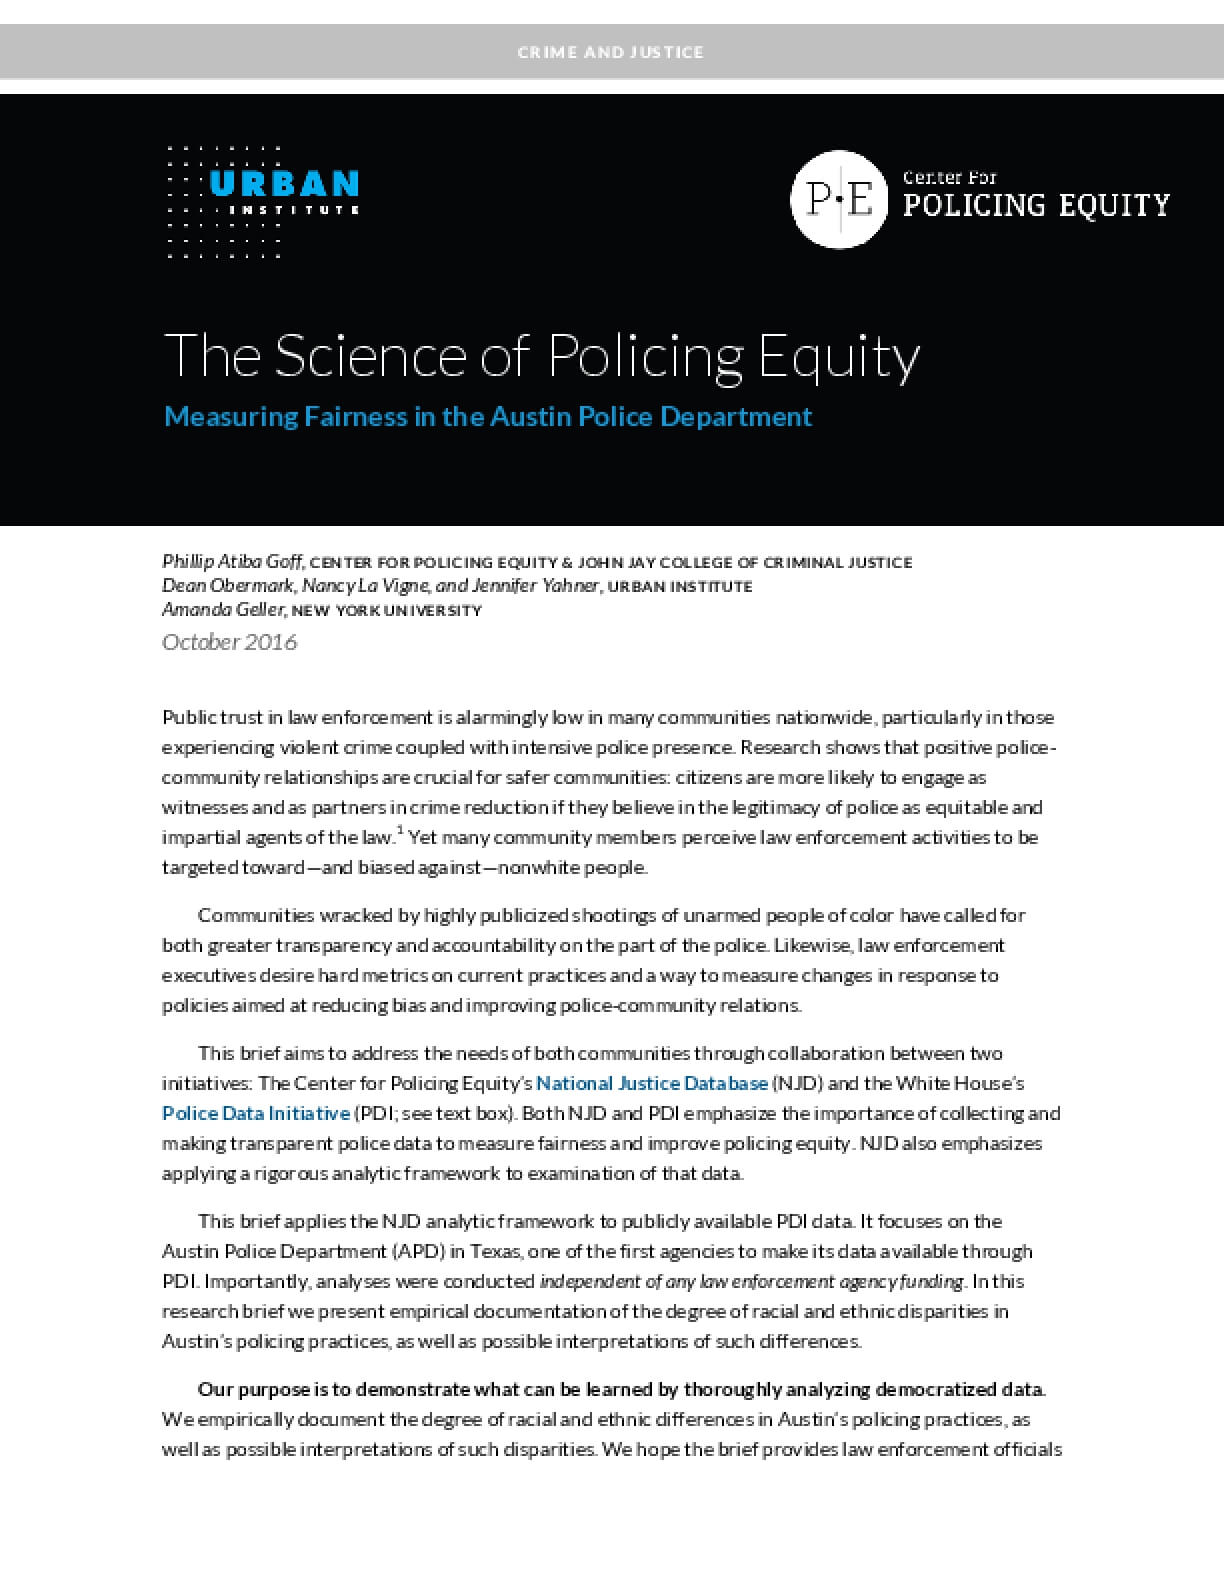 The Science of Policing Equity: Measuring Fairness in the Austin Police Department